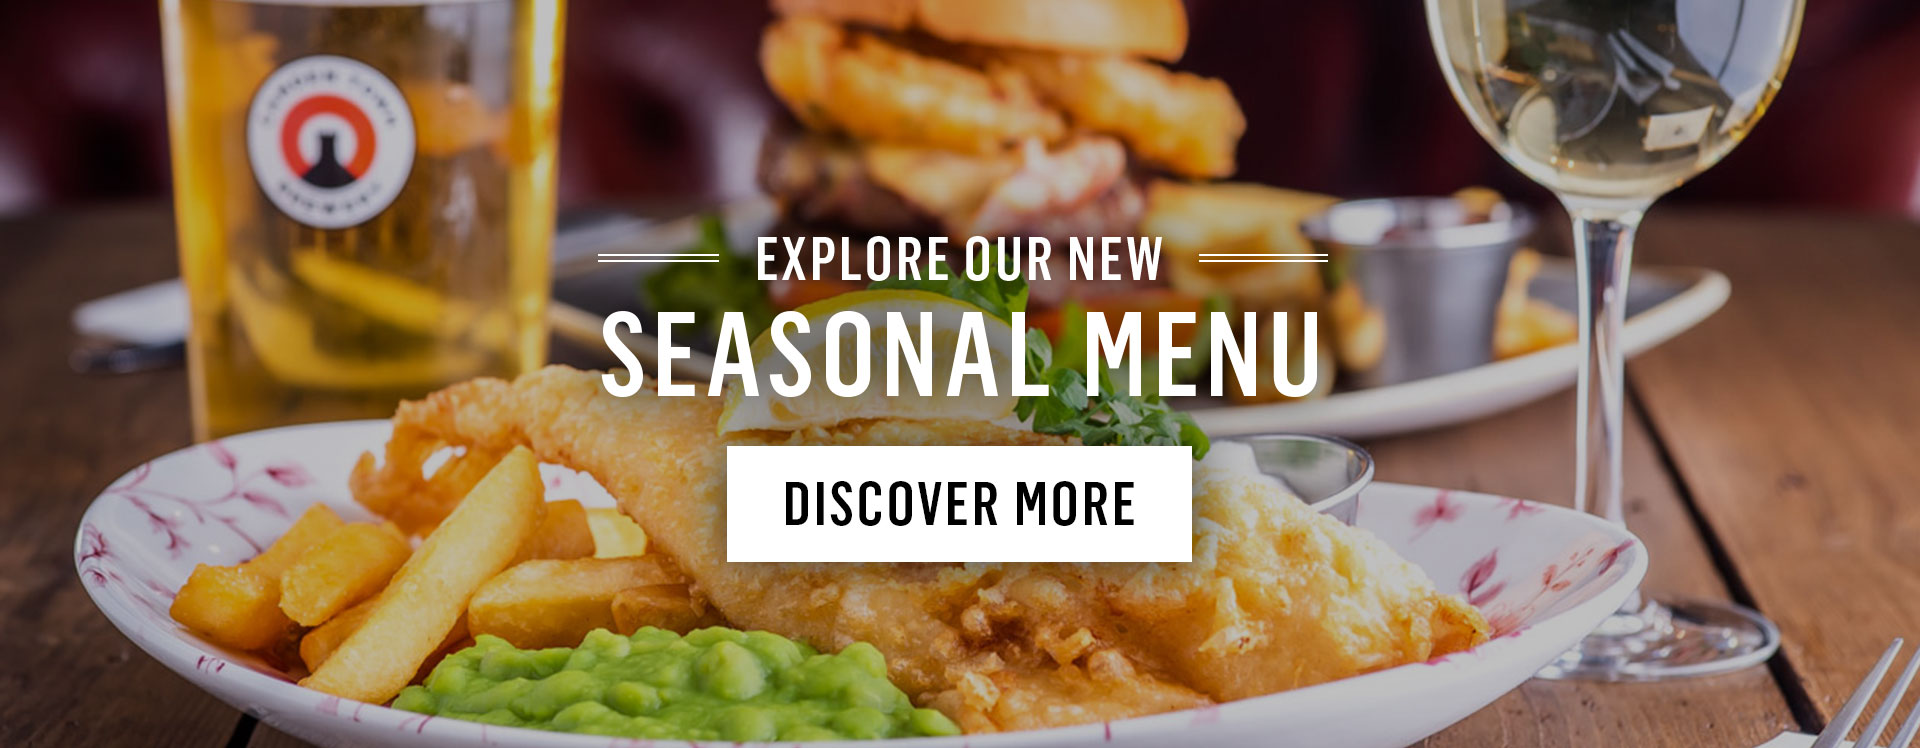 New Menu at The Sir Christopher Hatton